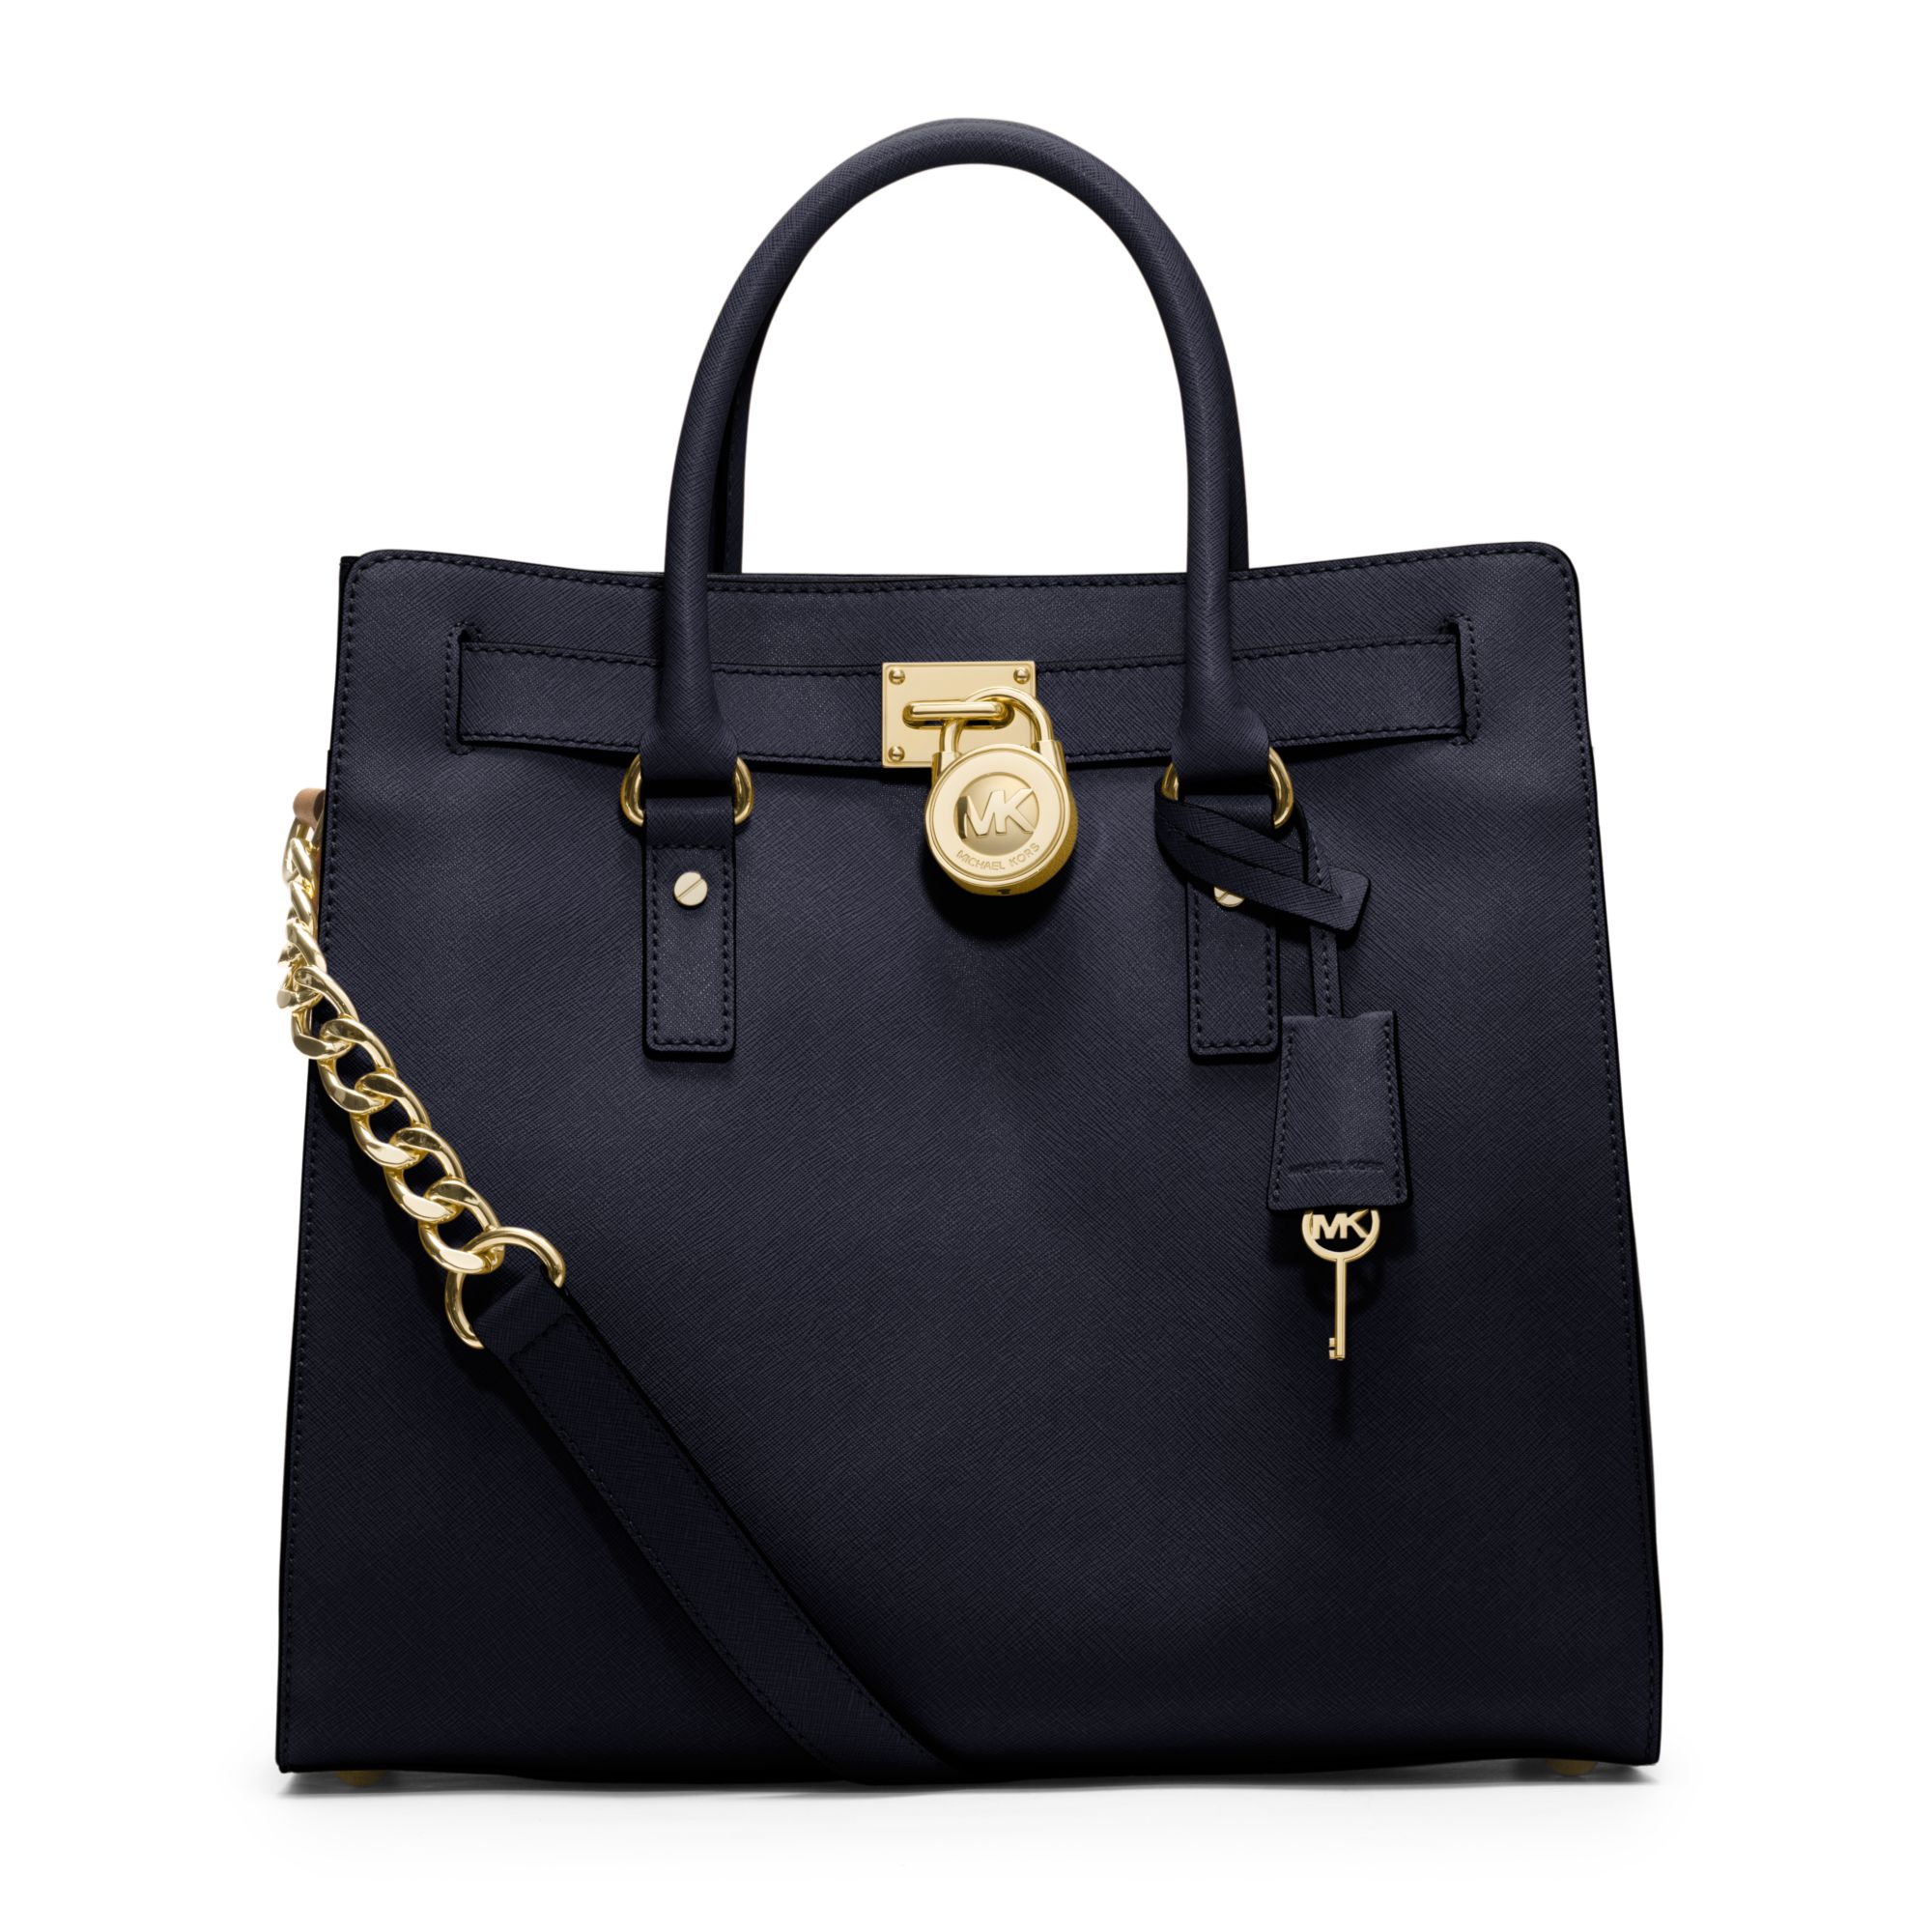 michael kors hamilton large saffiano leather tote in blue. Black Bedroom Furniture Sets. Home Design Ideas